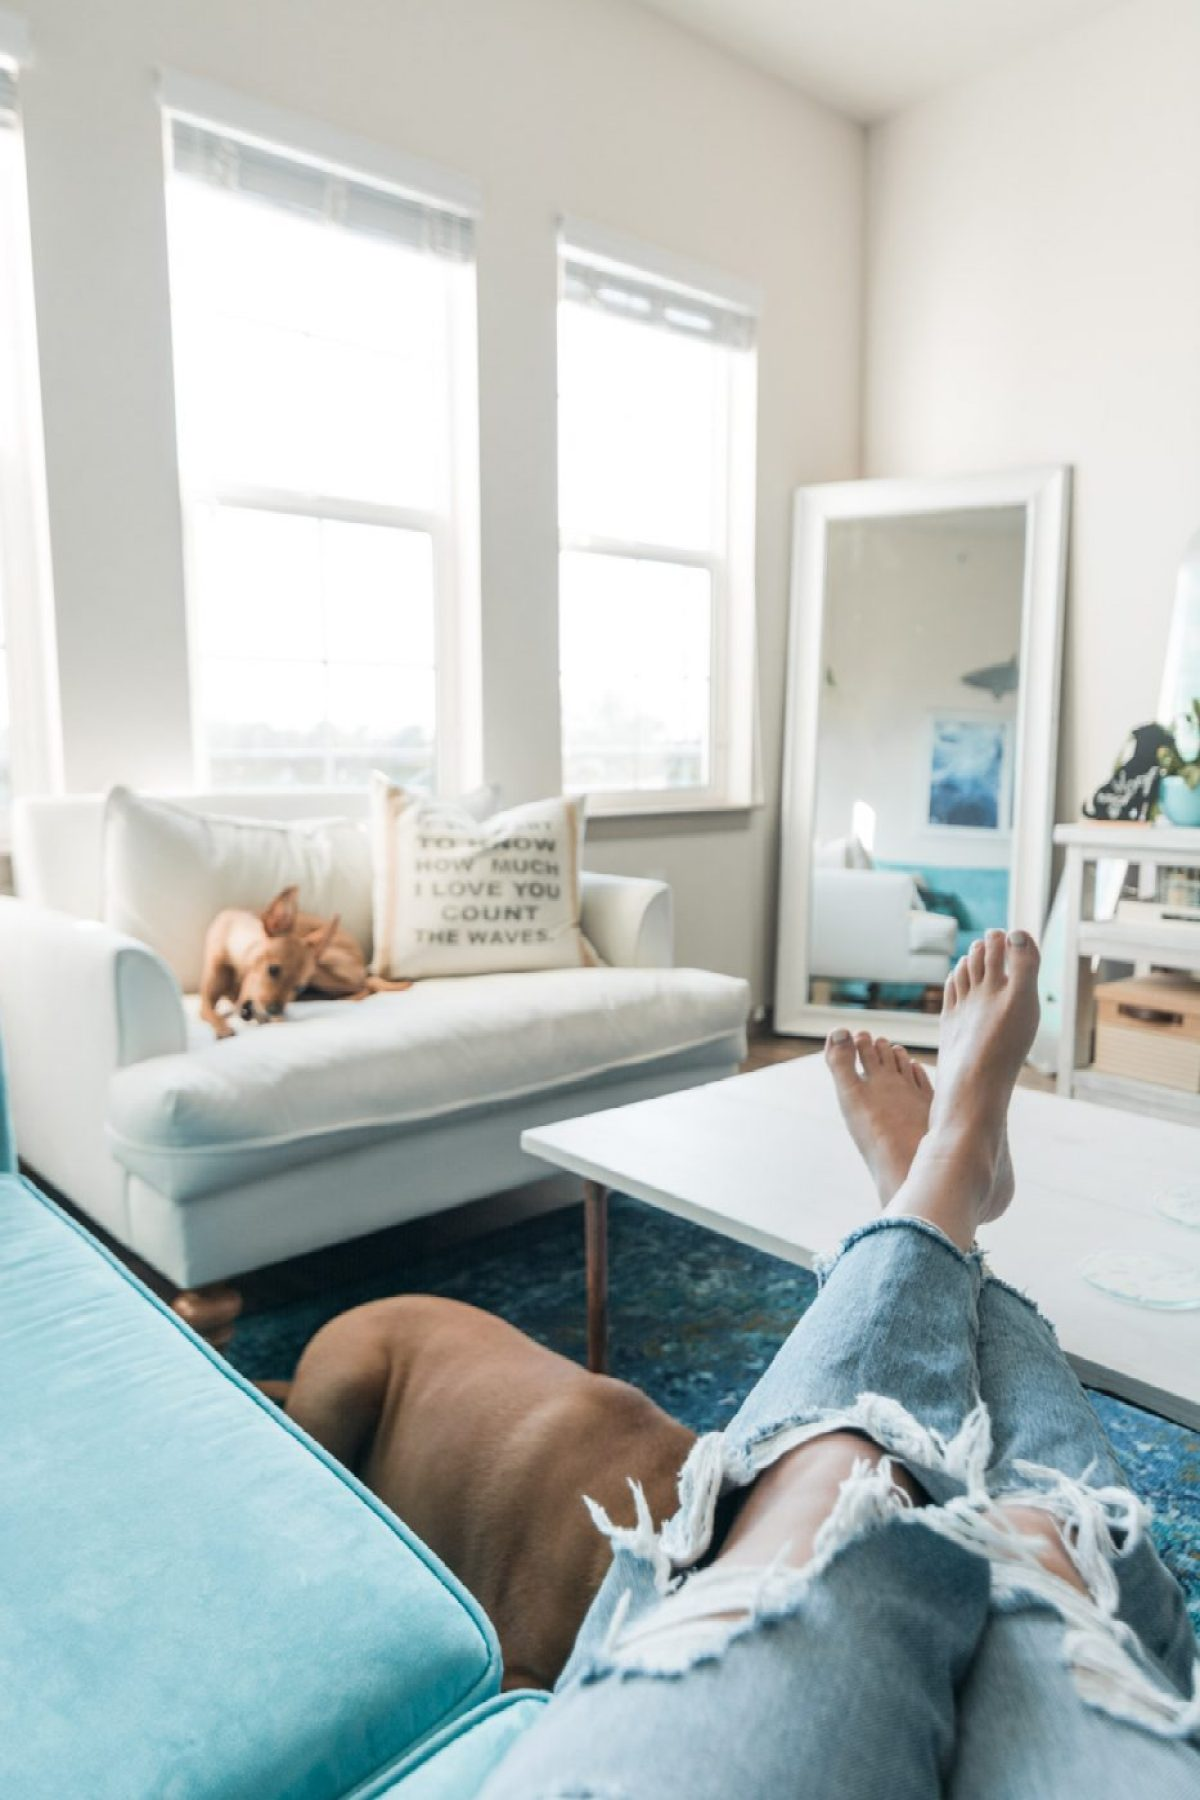 Making the most of an apartment living room by Jenny Bess of Sweet Teal